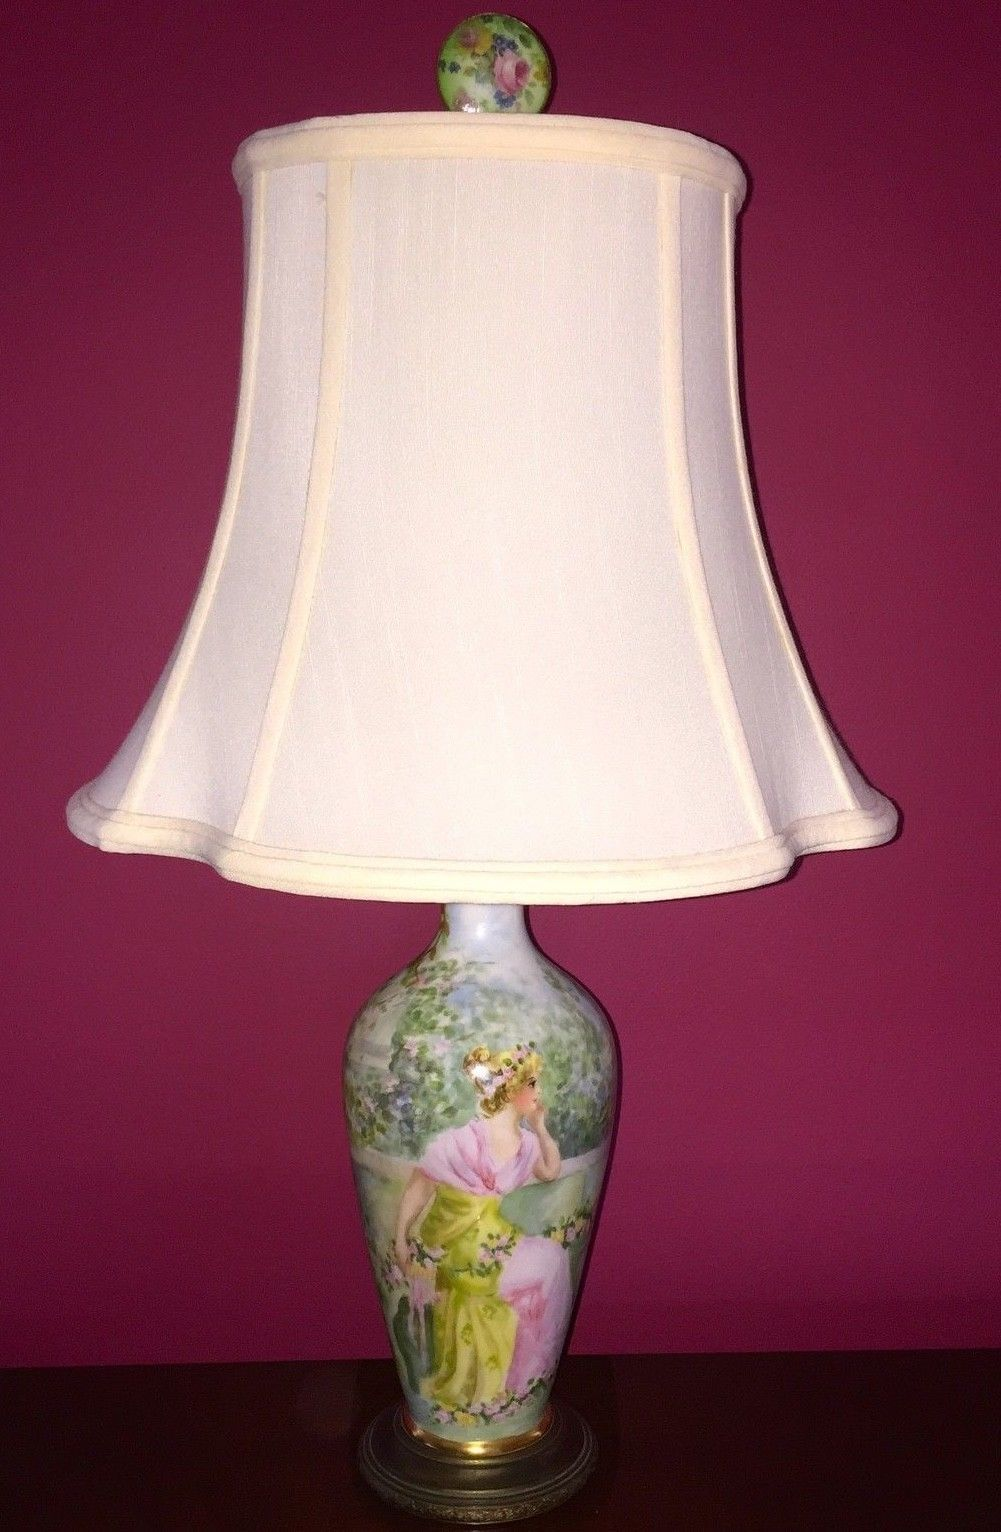 Antique Limoges France Hand Painted Signed Porcelain Vase Table Lamp W Shade Vase Table Lamp Lamp Table Lamp